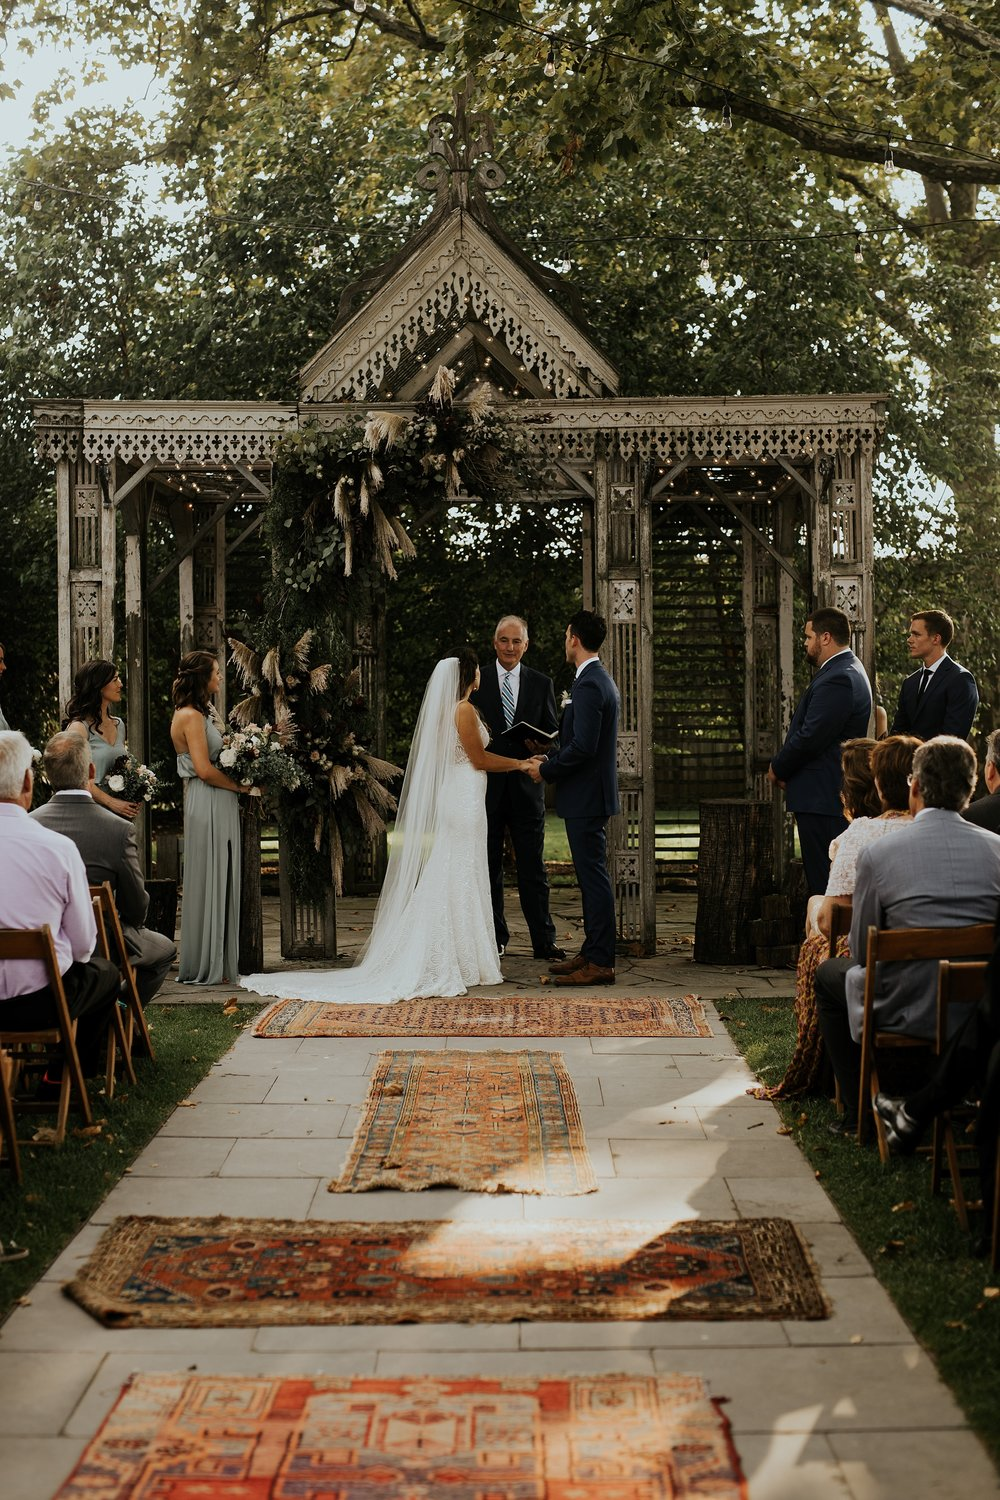 Heartfelt Botanical Terrain at Styers Wedding in Glenn Mills Pennslyvania by Trin Jensen Photography_0028.jpg